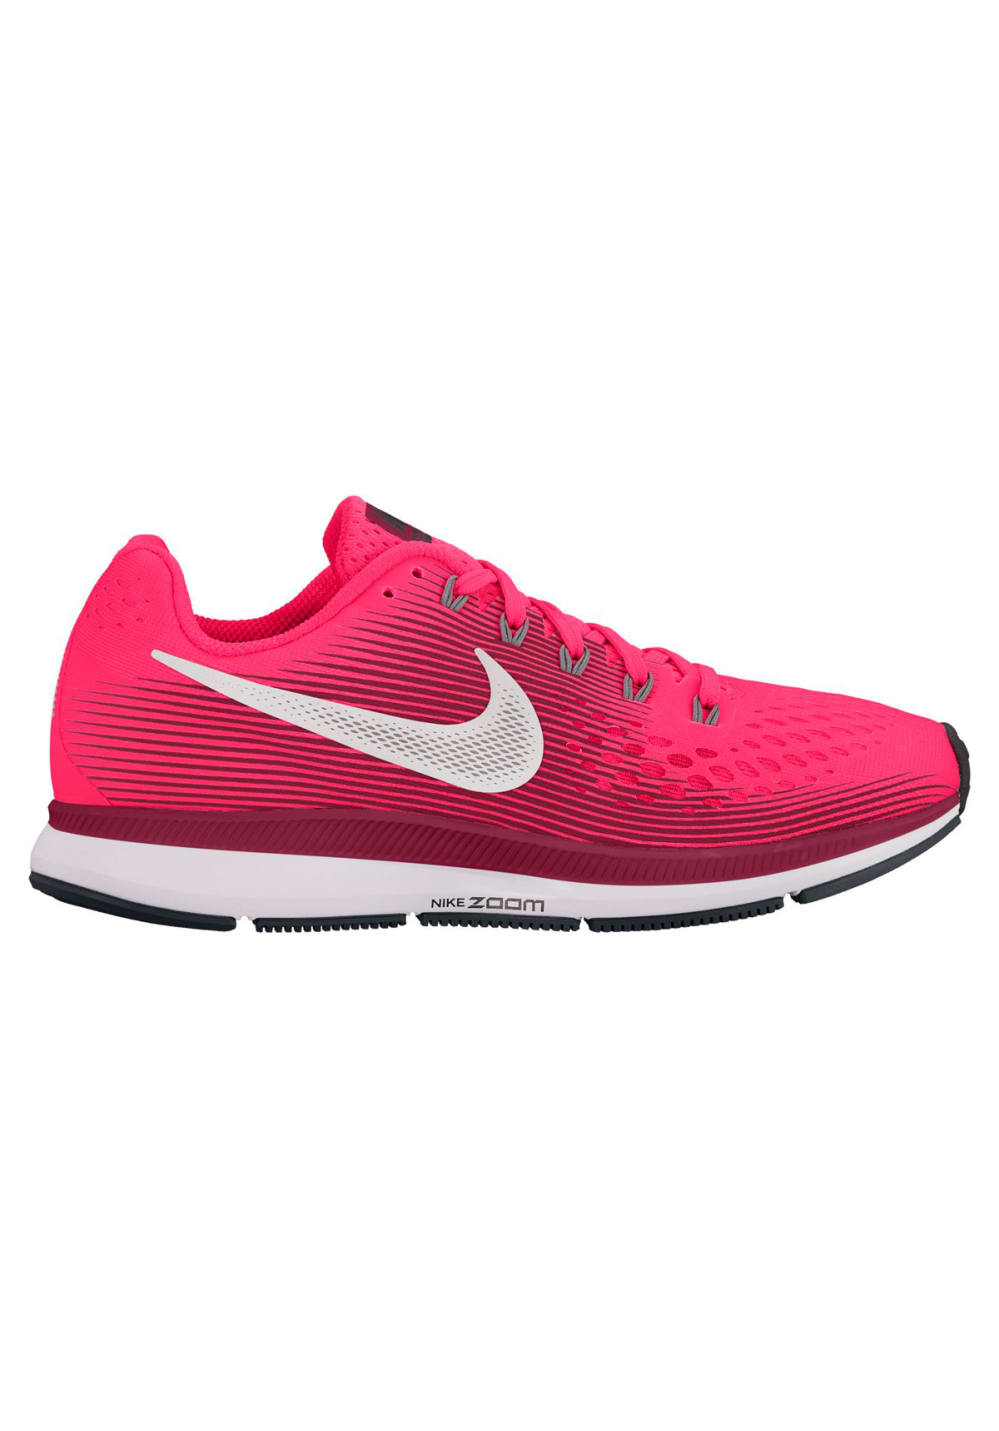 Pegasus 34 Suzpgqmv Running Rose Zoom Chaussures Femme Nike Air Pour BrodCeWx